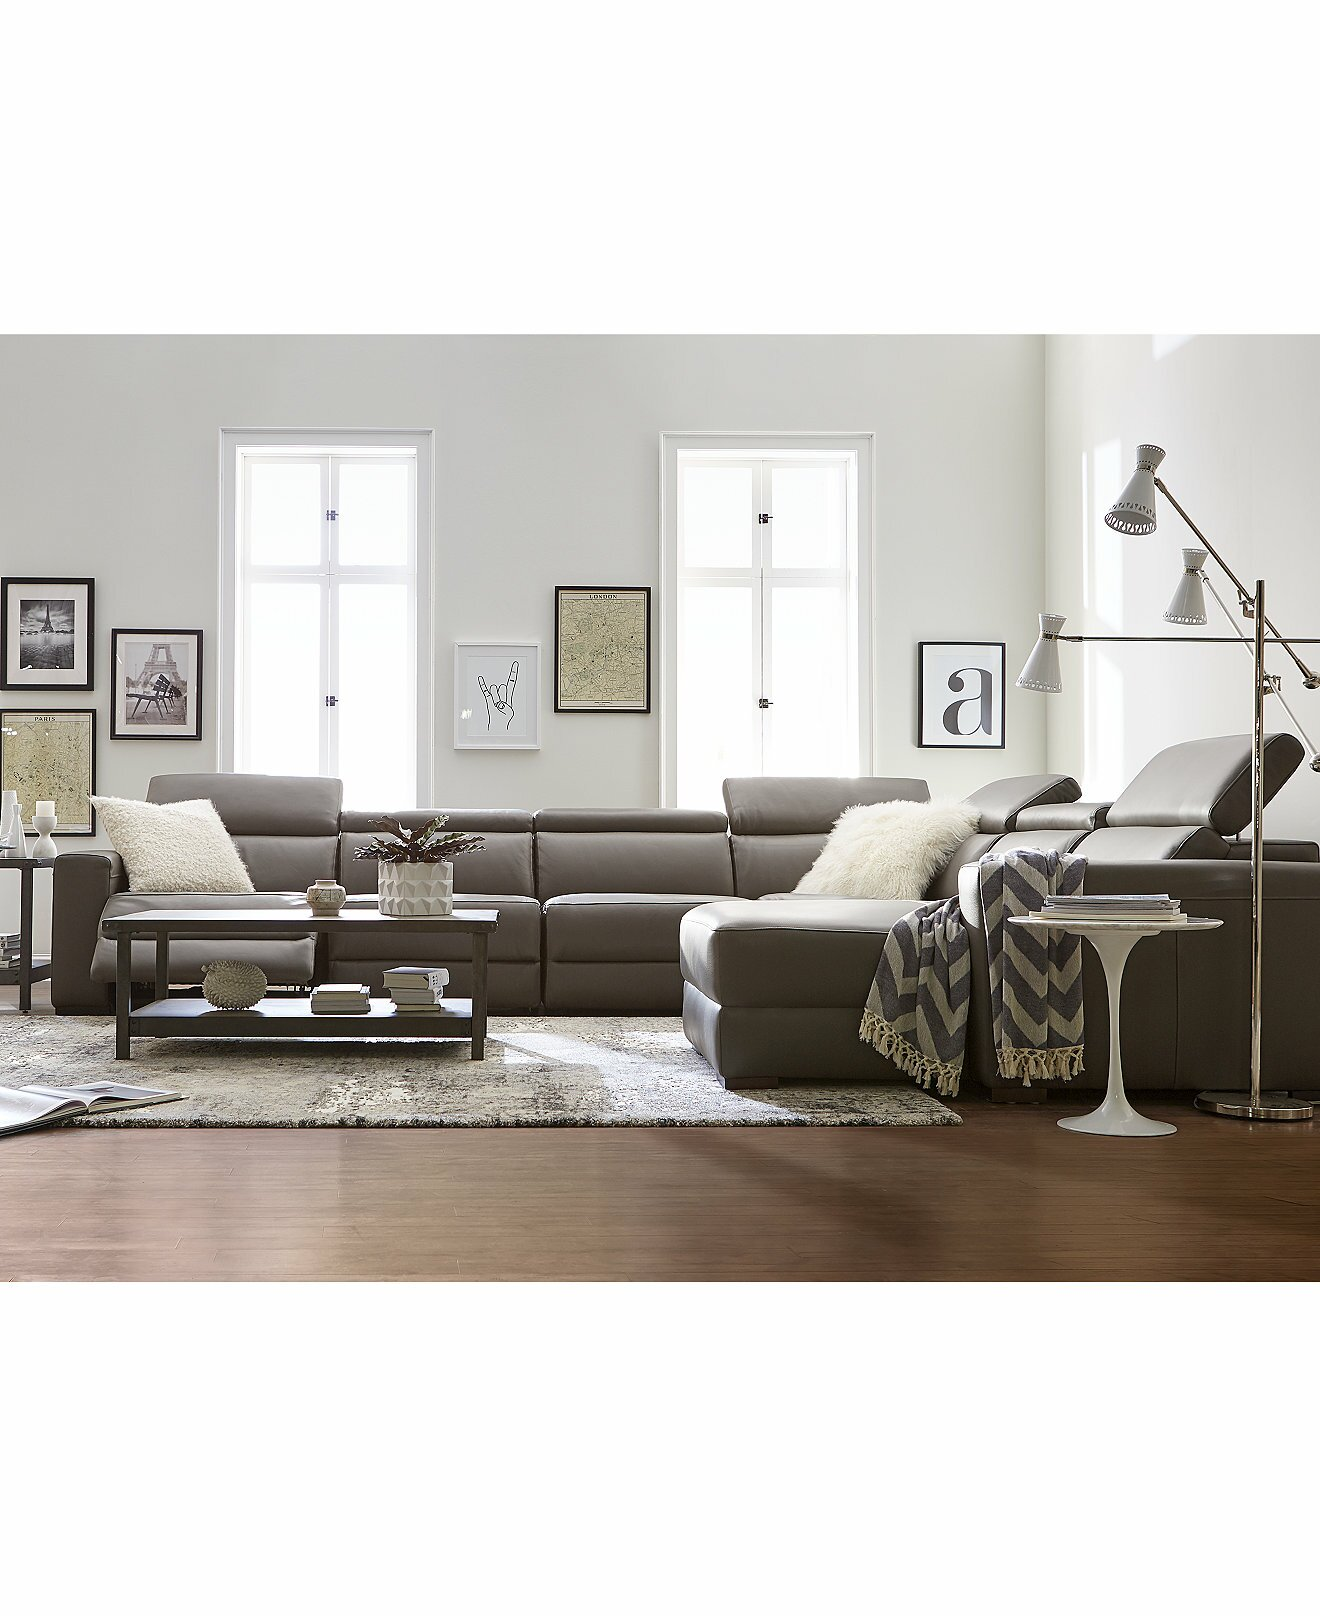 sofa klein great faymoor sofa in klein silver tone fabric. Black Bedroom Furniture Sets. Home Design Ideas